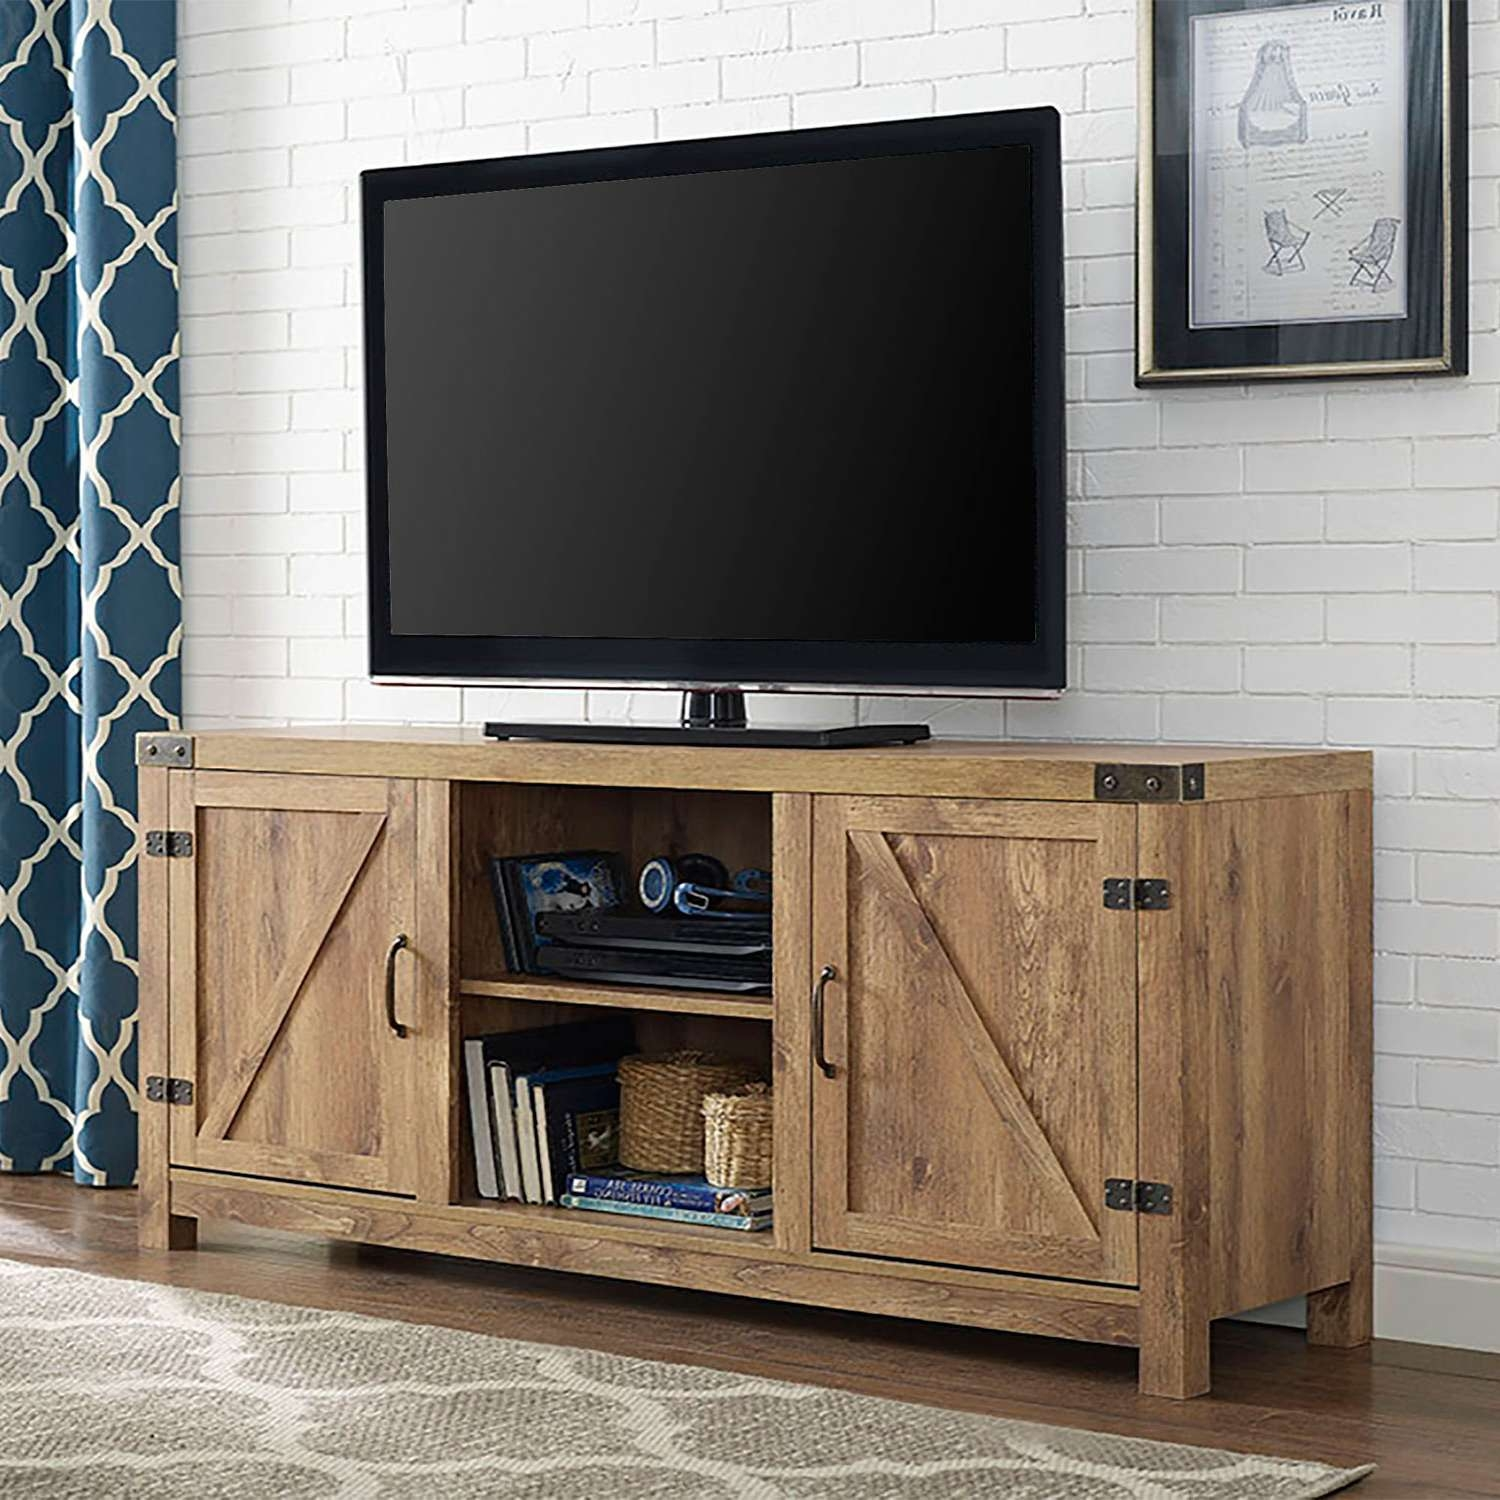 Tv Stands & Cabinets On Sale | Bellacor Within Sleek Tv Stands (View 6 of 15)